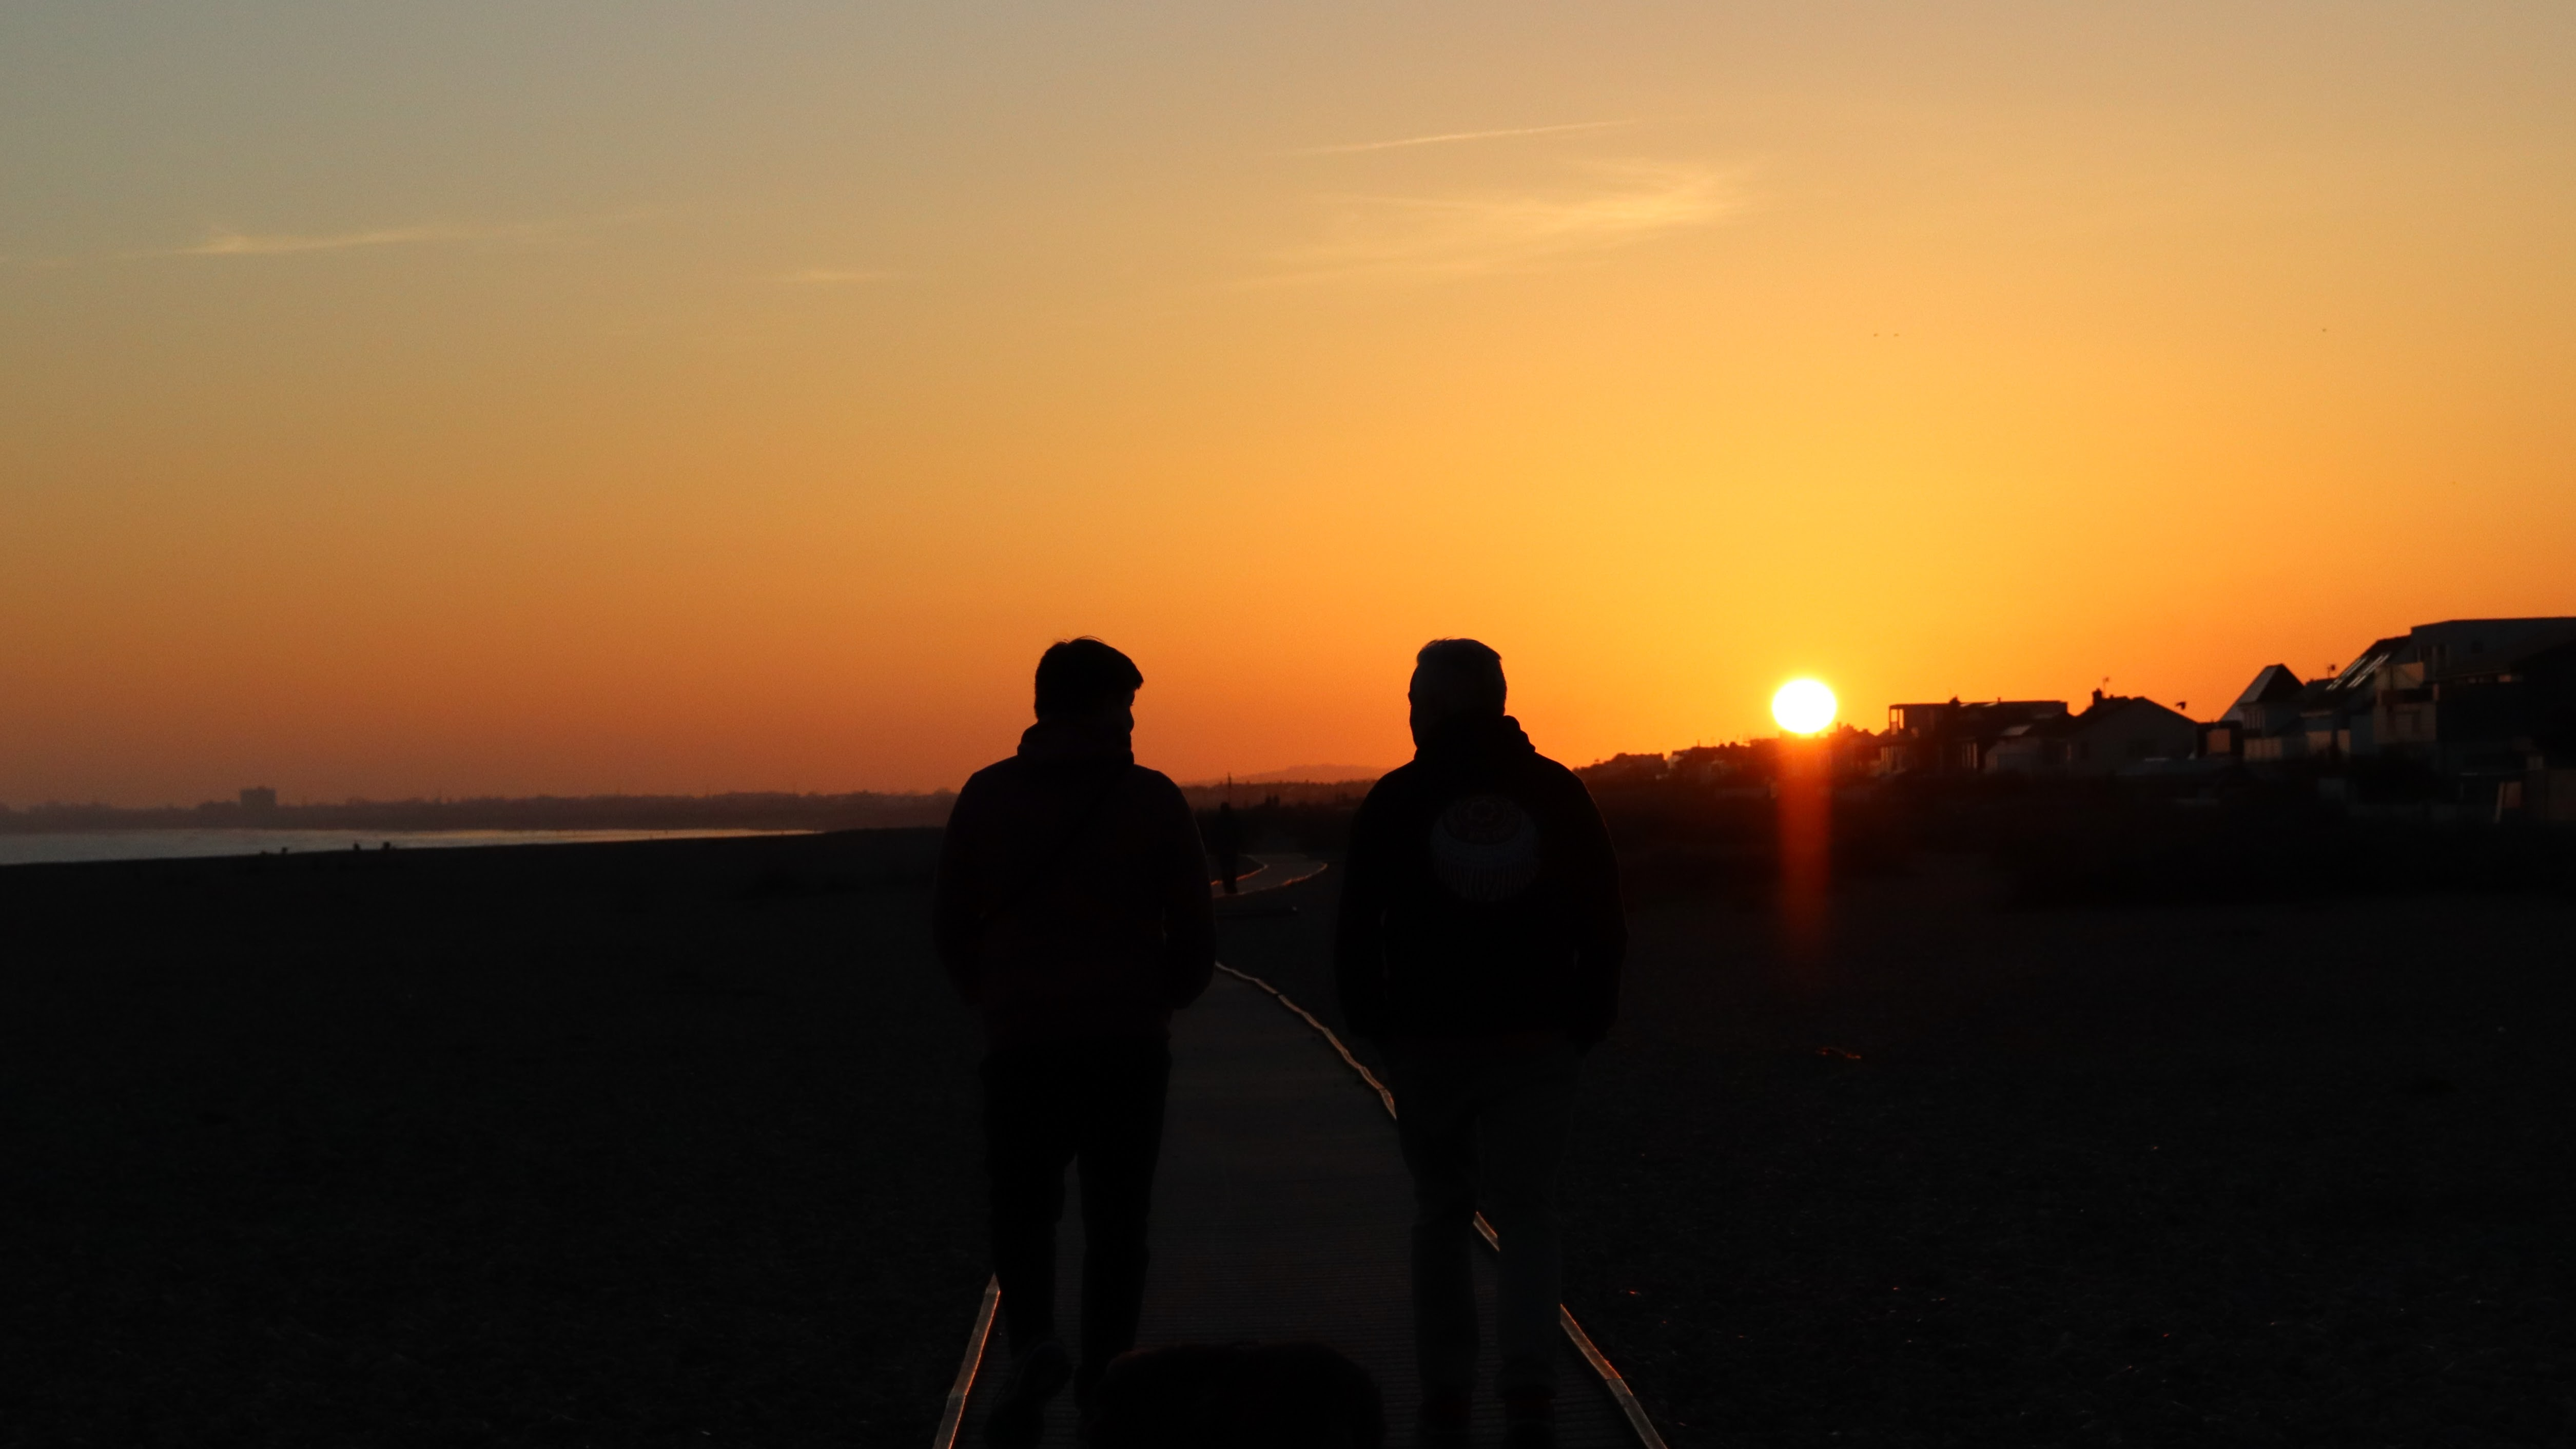 Two men walking on a board walk with orange skies behind then as the sun sets behind rooftops.